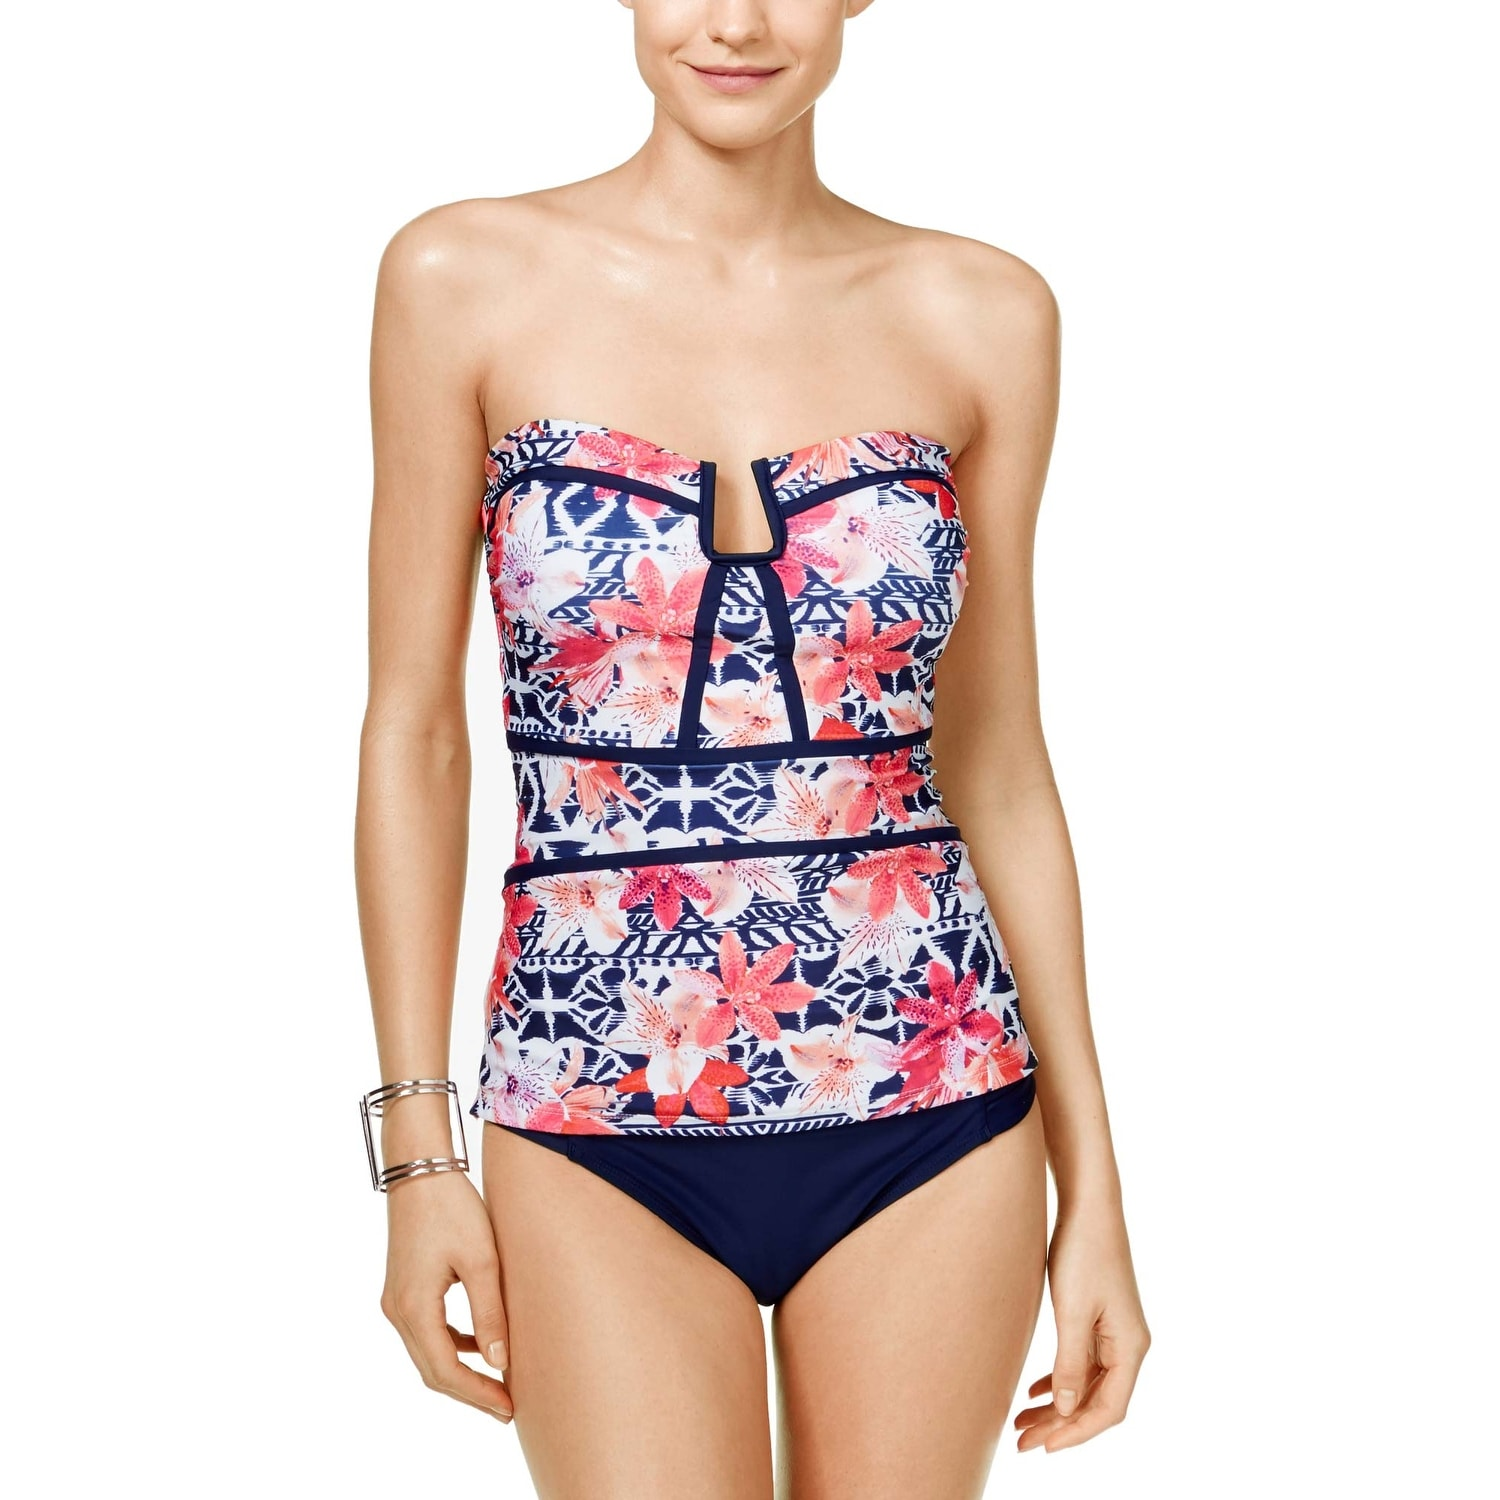 55d44adbbbfb8 Shop Island Escape Womens Como La Flor Printed Strapless Tankini Top 14  Navy Swimsuit - Free Shipping On Orders Over $45 - Overstock - 22316100